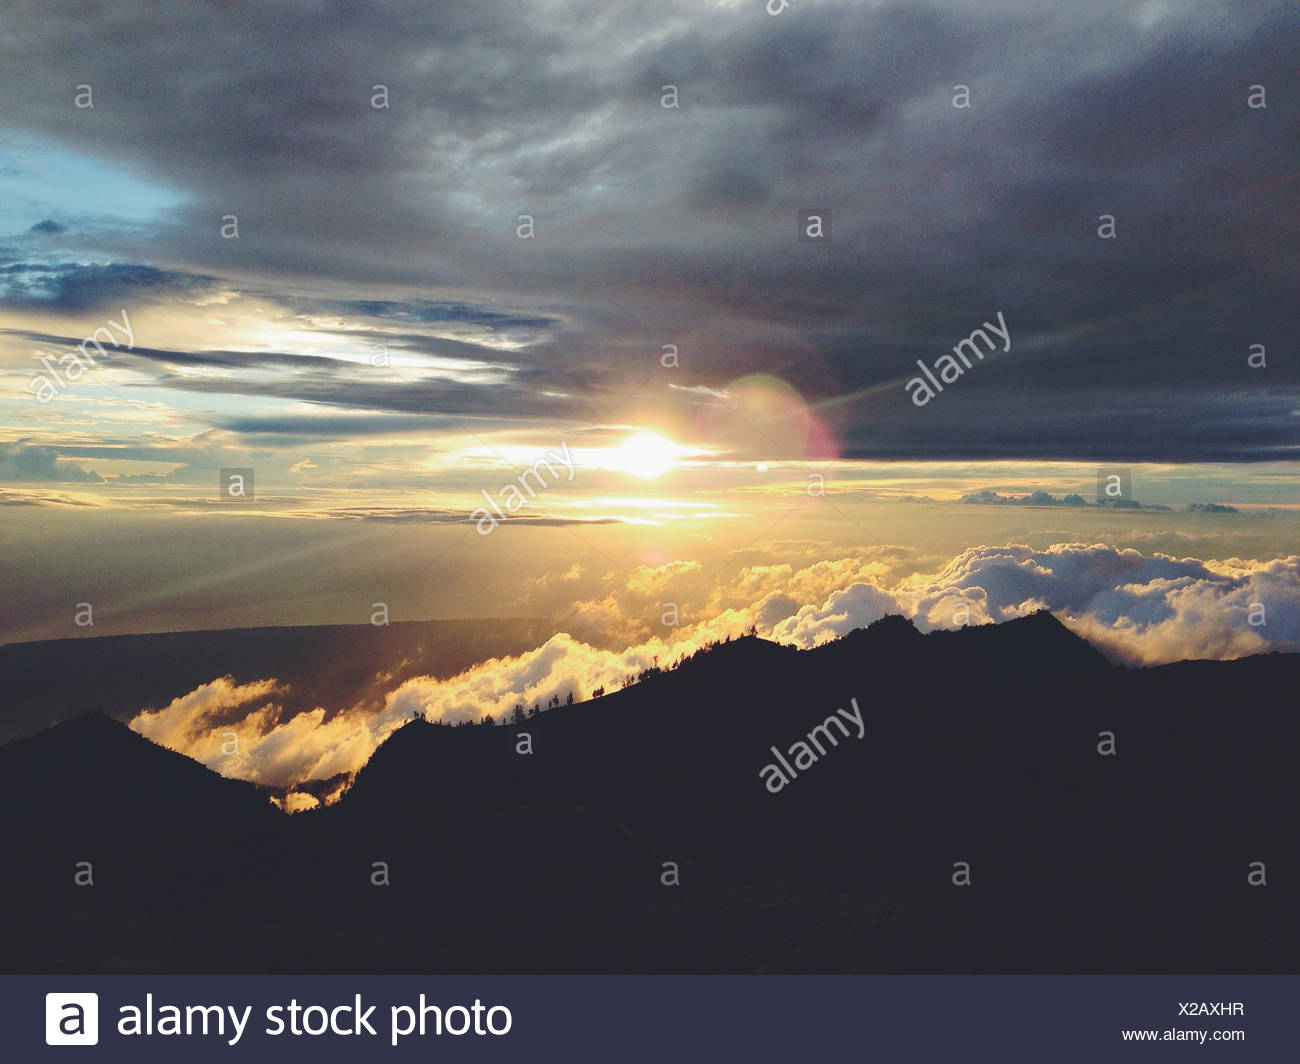 Sun peeping behind clouds - Stock Image